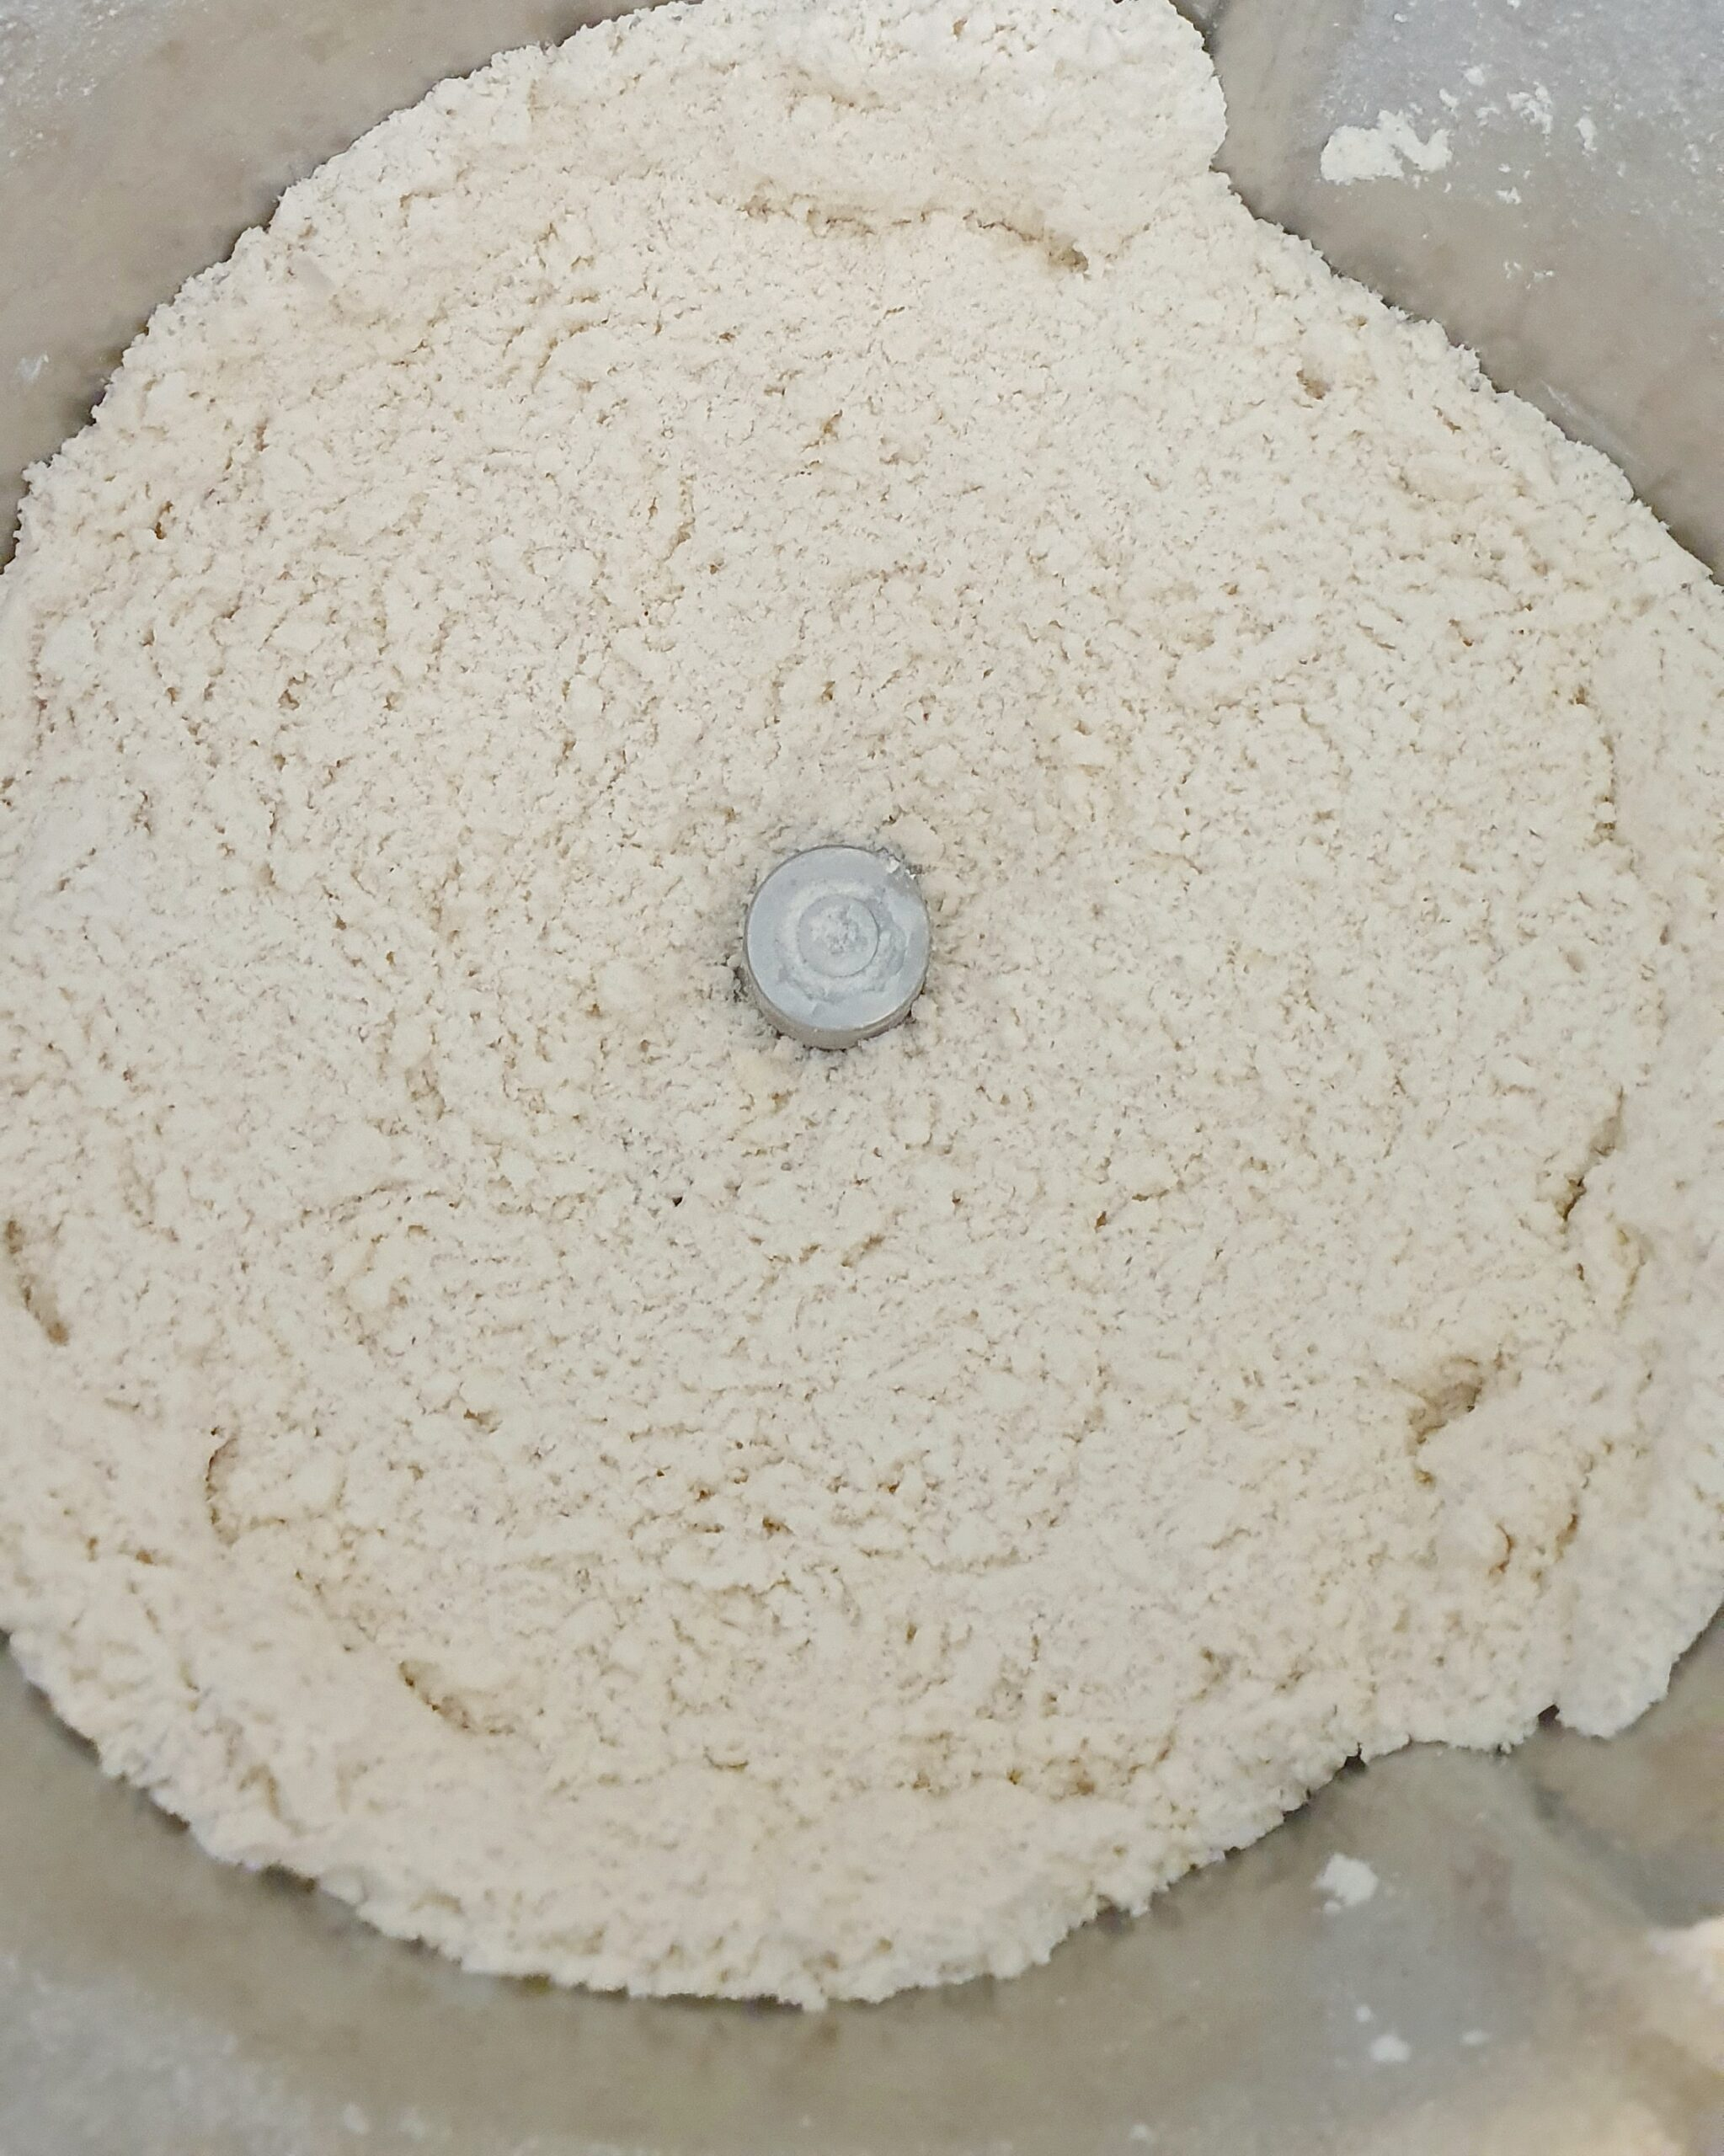 Breadcrumb consitency flour and butter